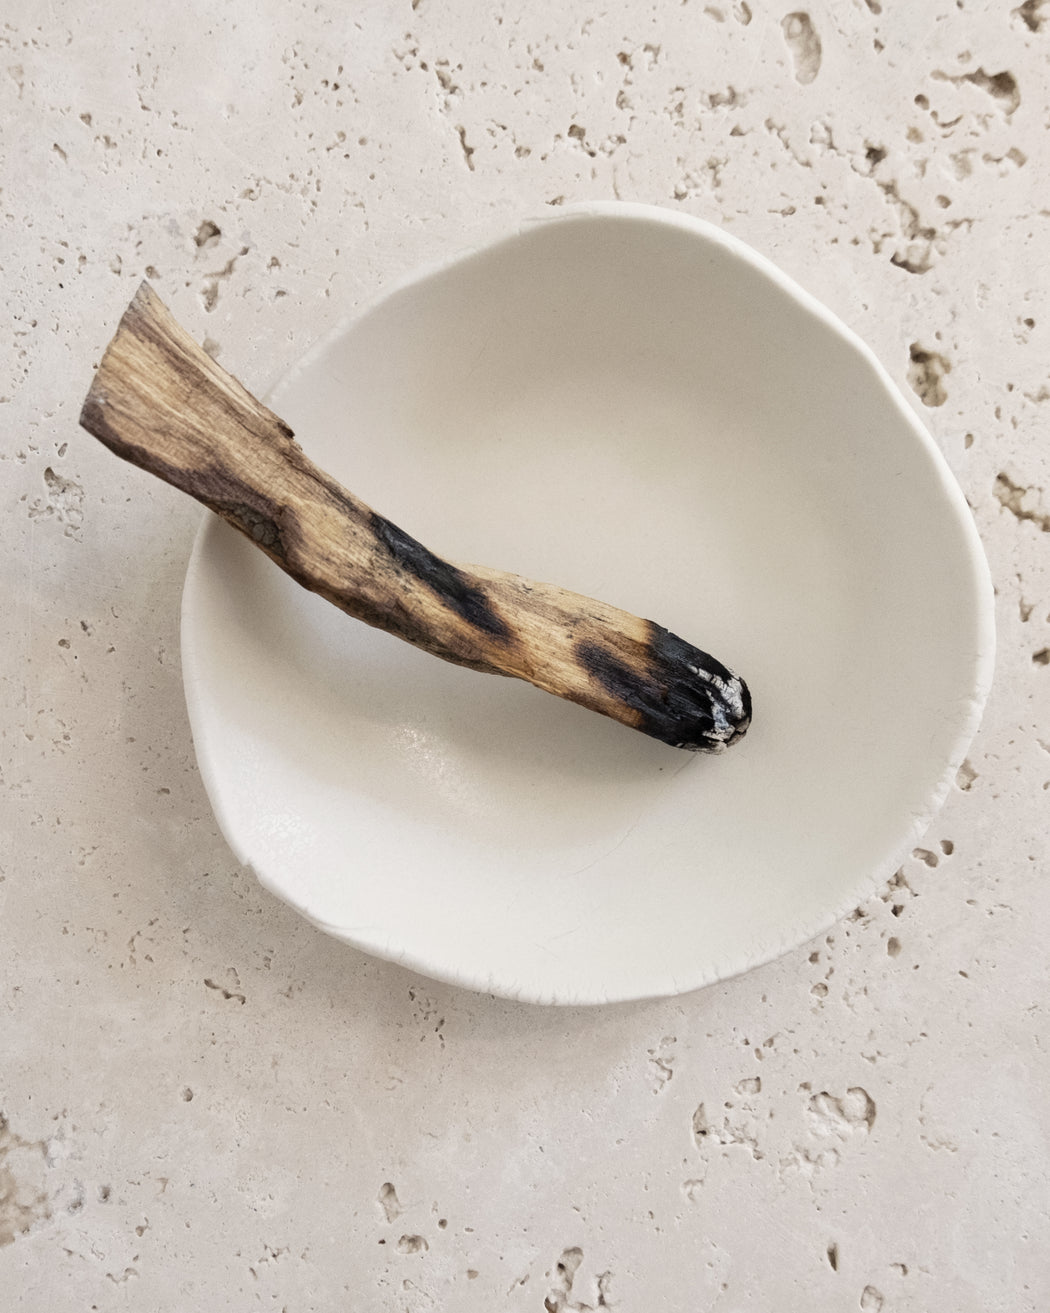 WHITE MINI BOWL | MIE KIM STUDIO